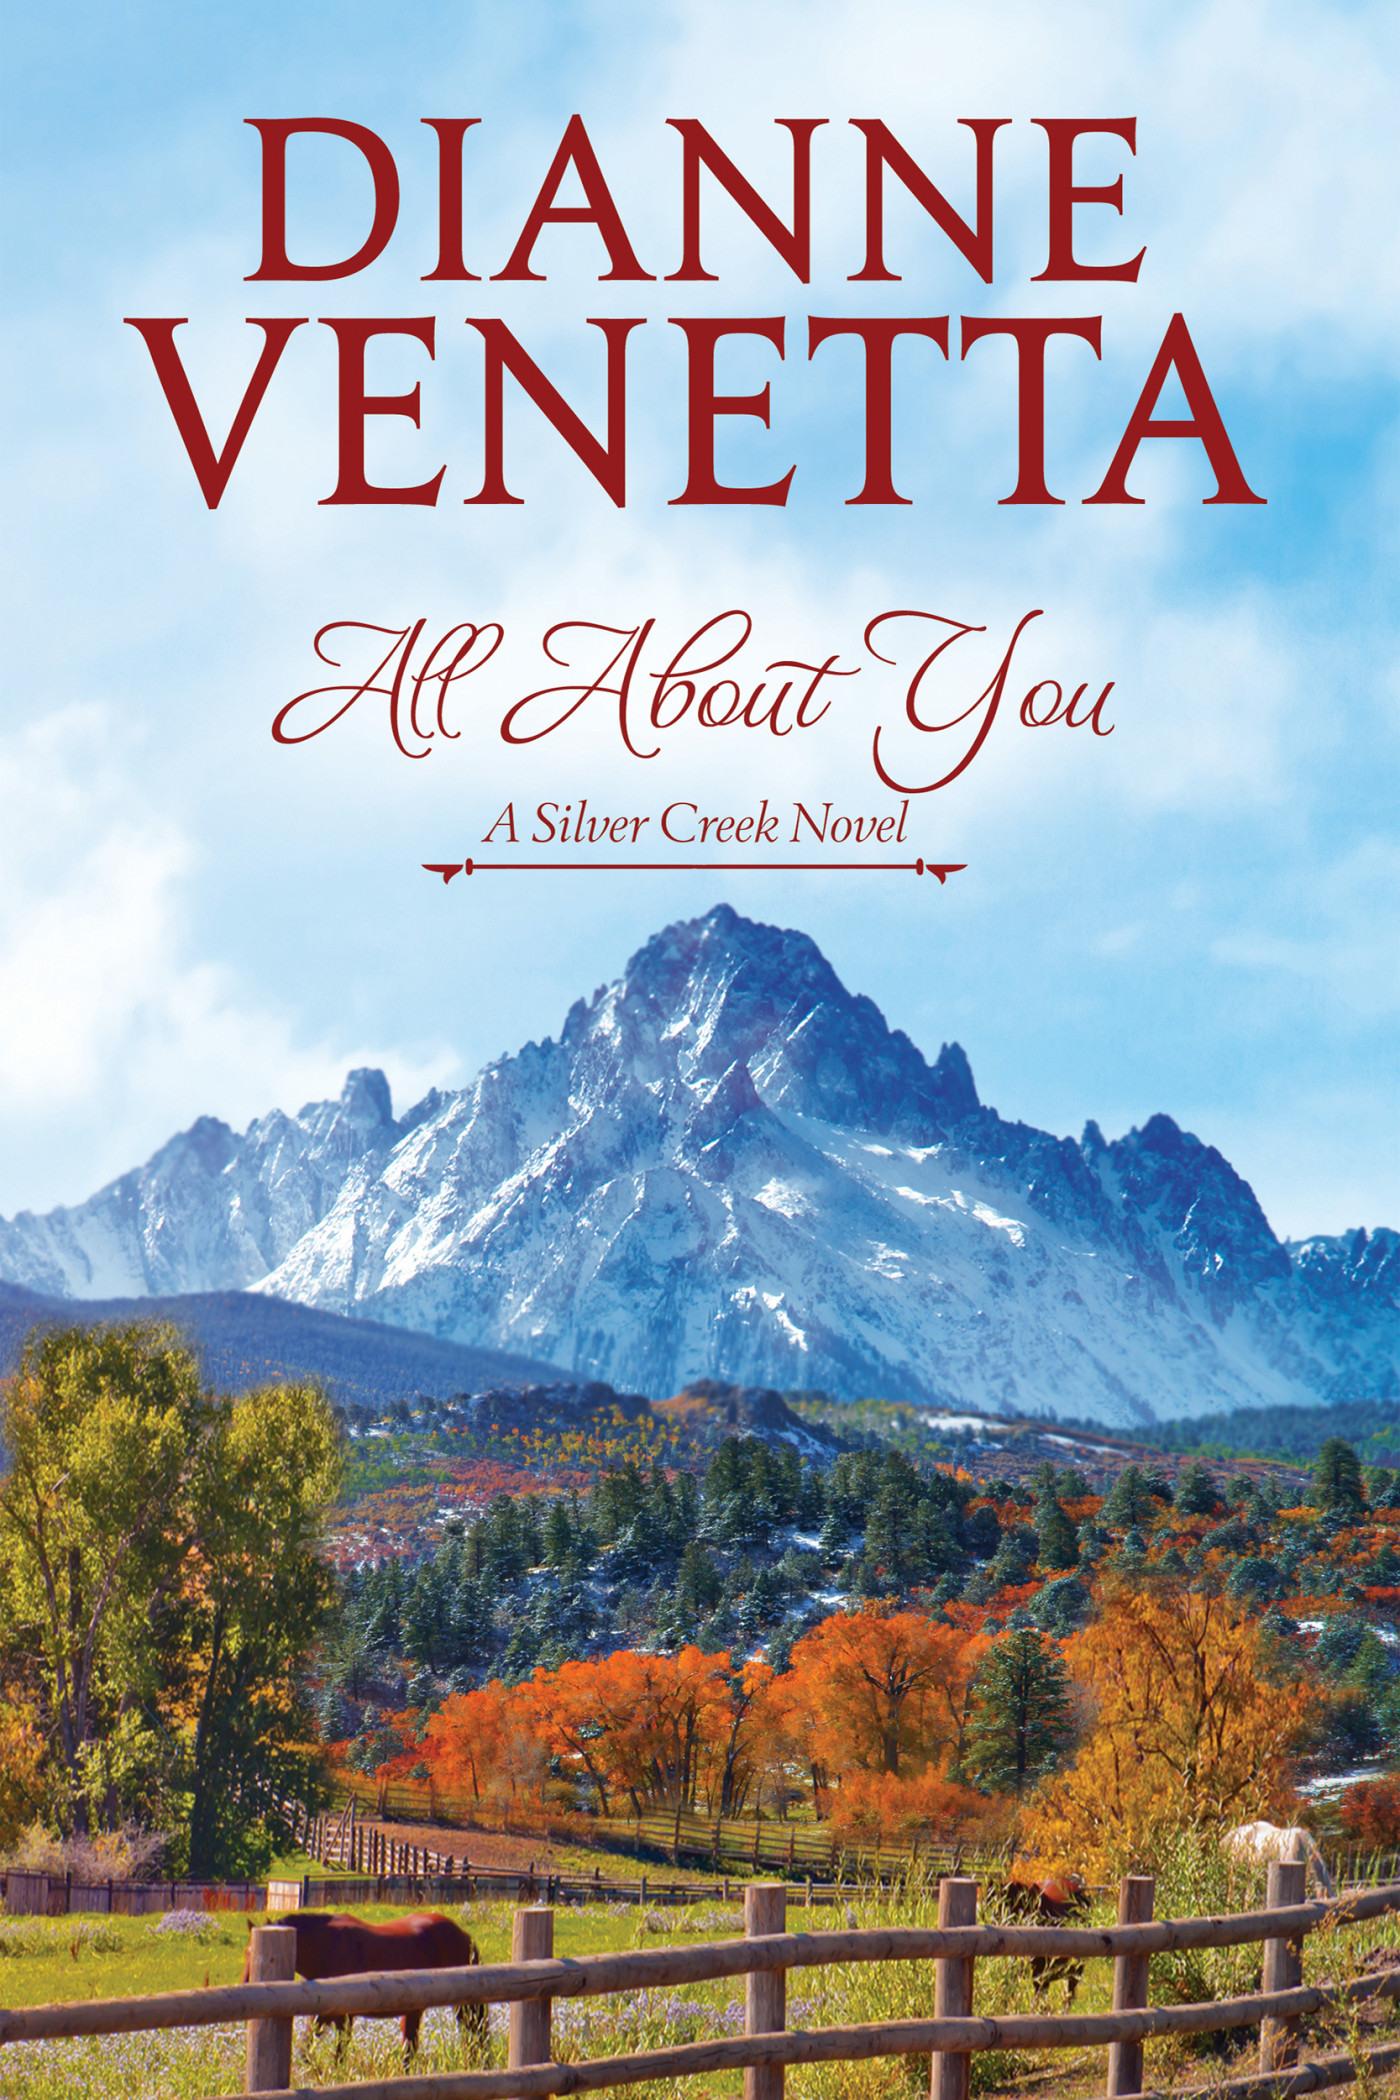 All About You by Dianne Venetta